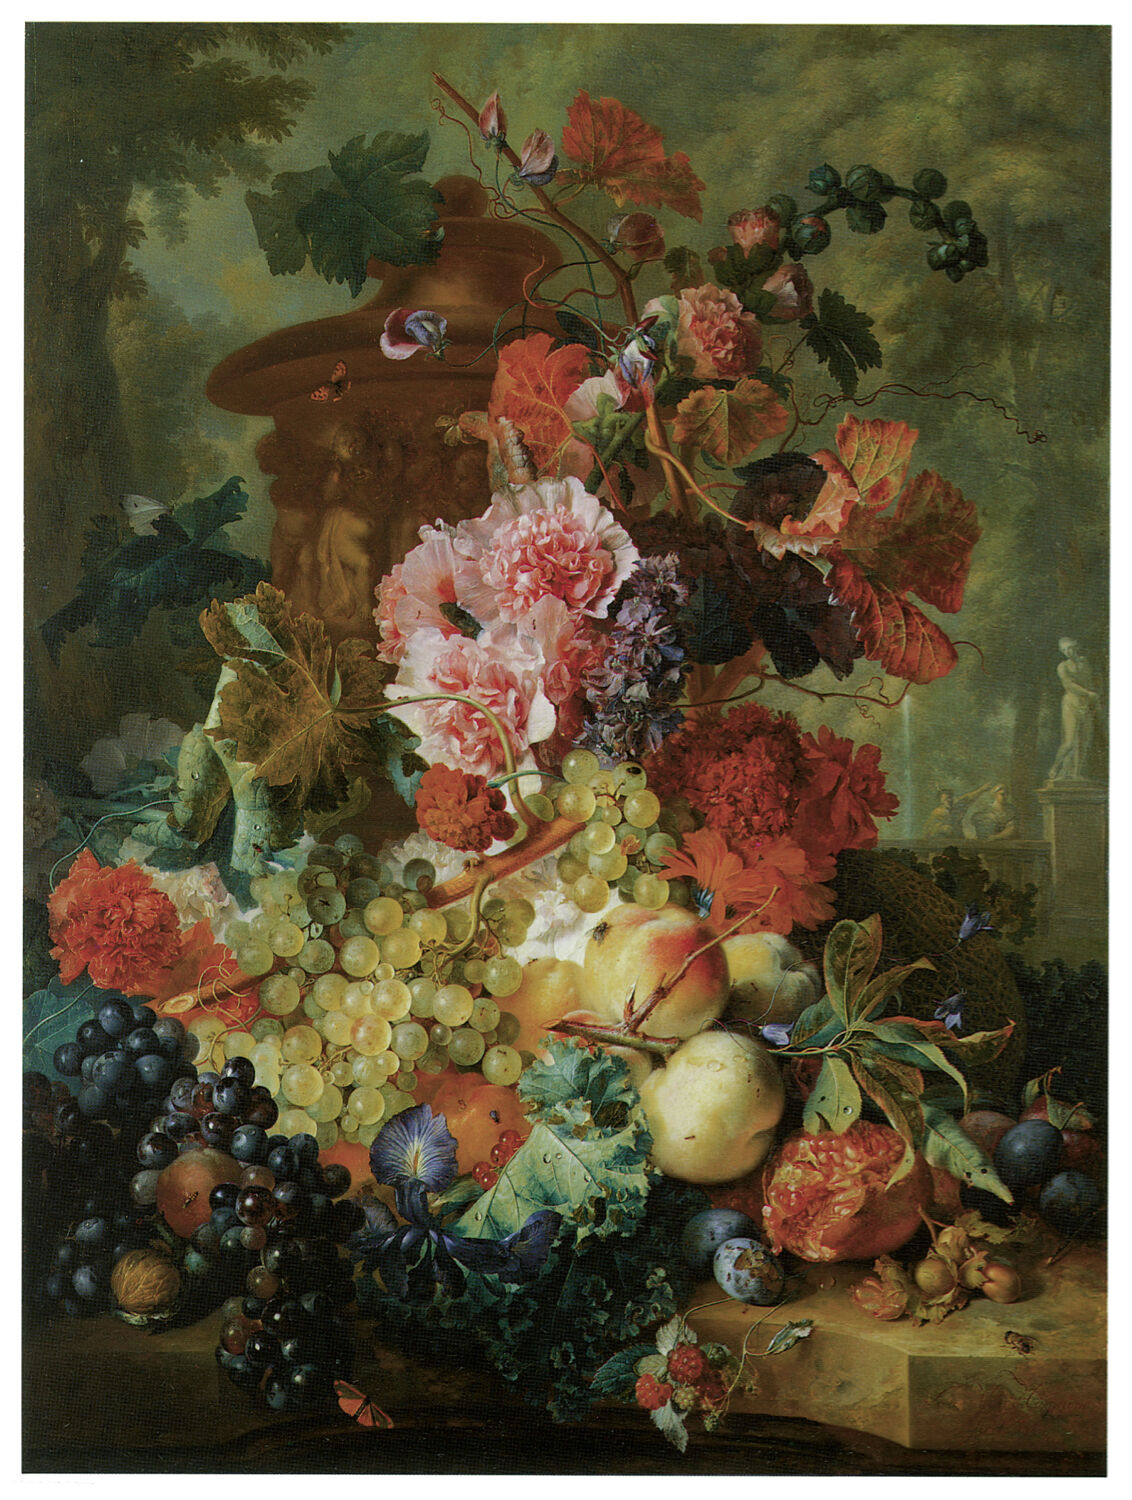 1222 Fruits and Flowers Paint Art Decor POSTER.Graphics to decorate home office.